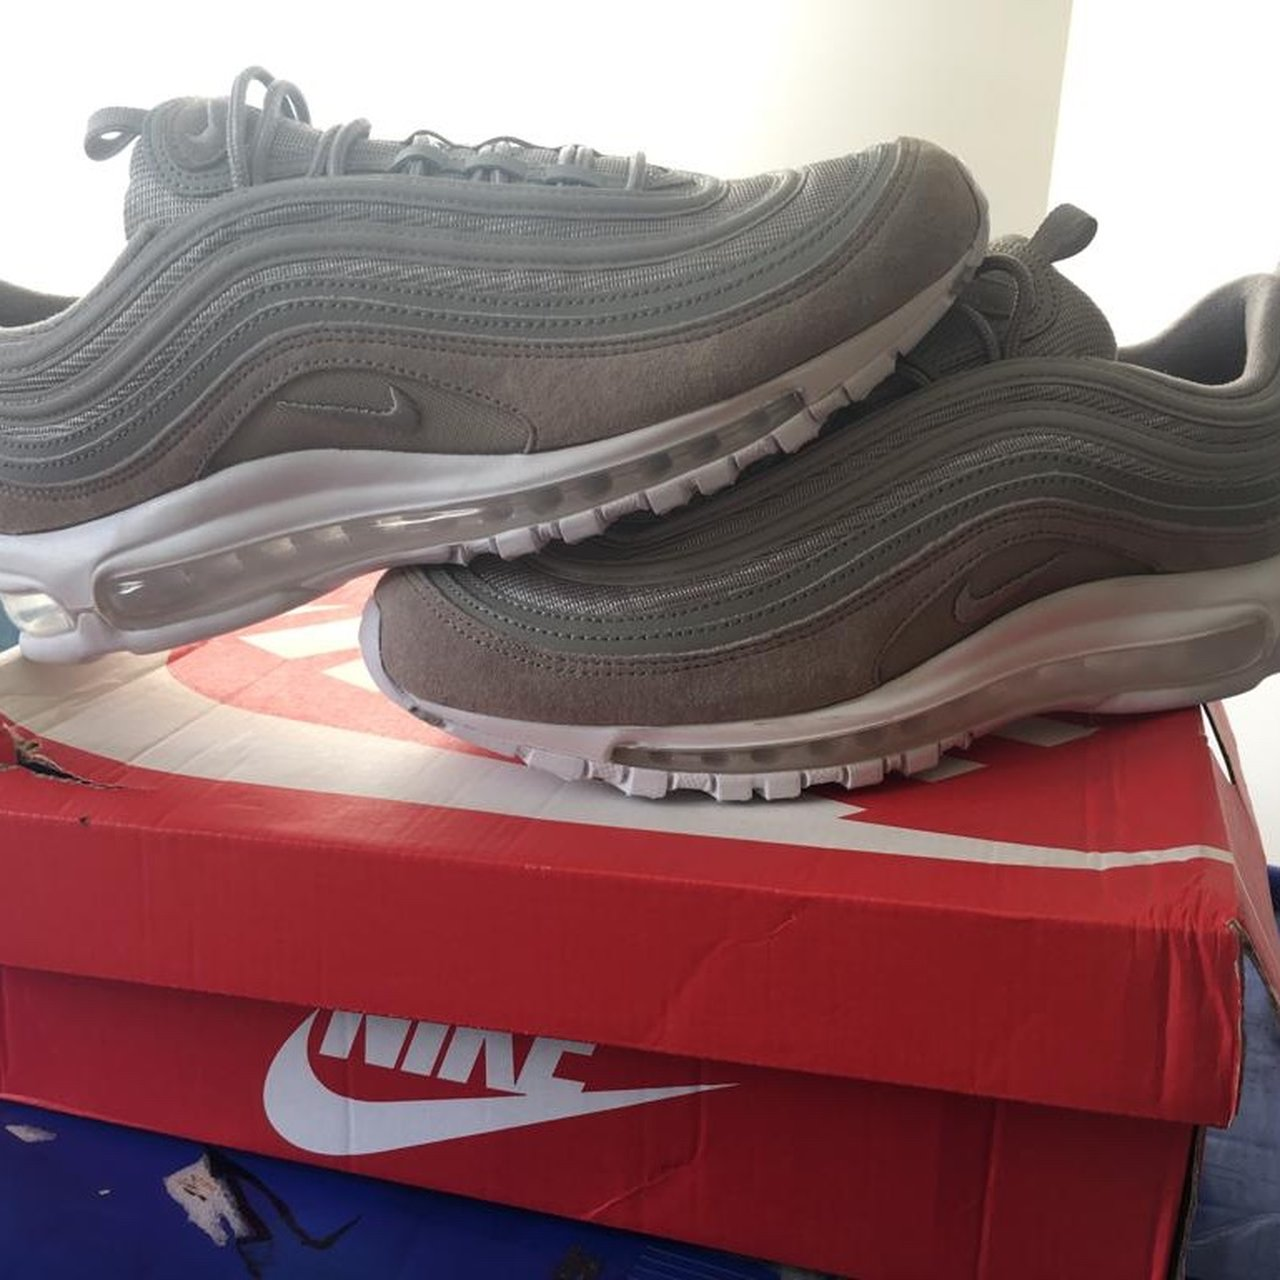 9ec155c85e1006 New Air Max 97 Cobblestone Suede Grey White Size UK 9